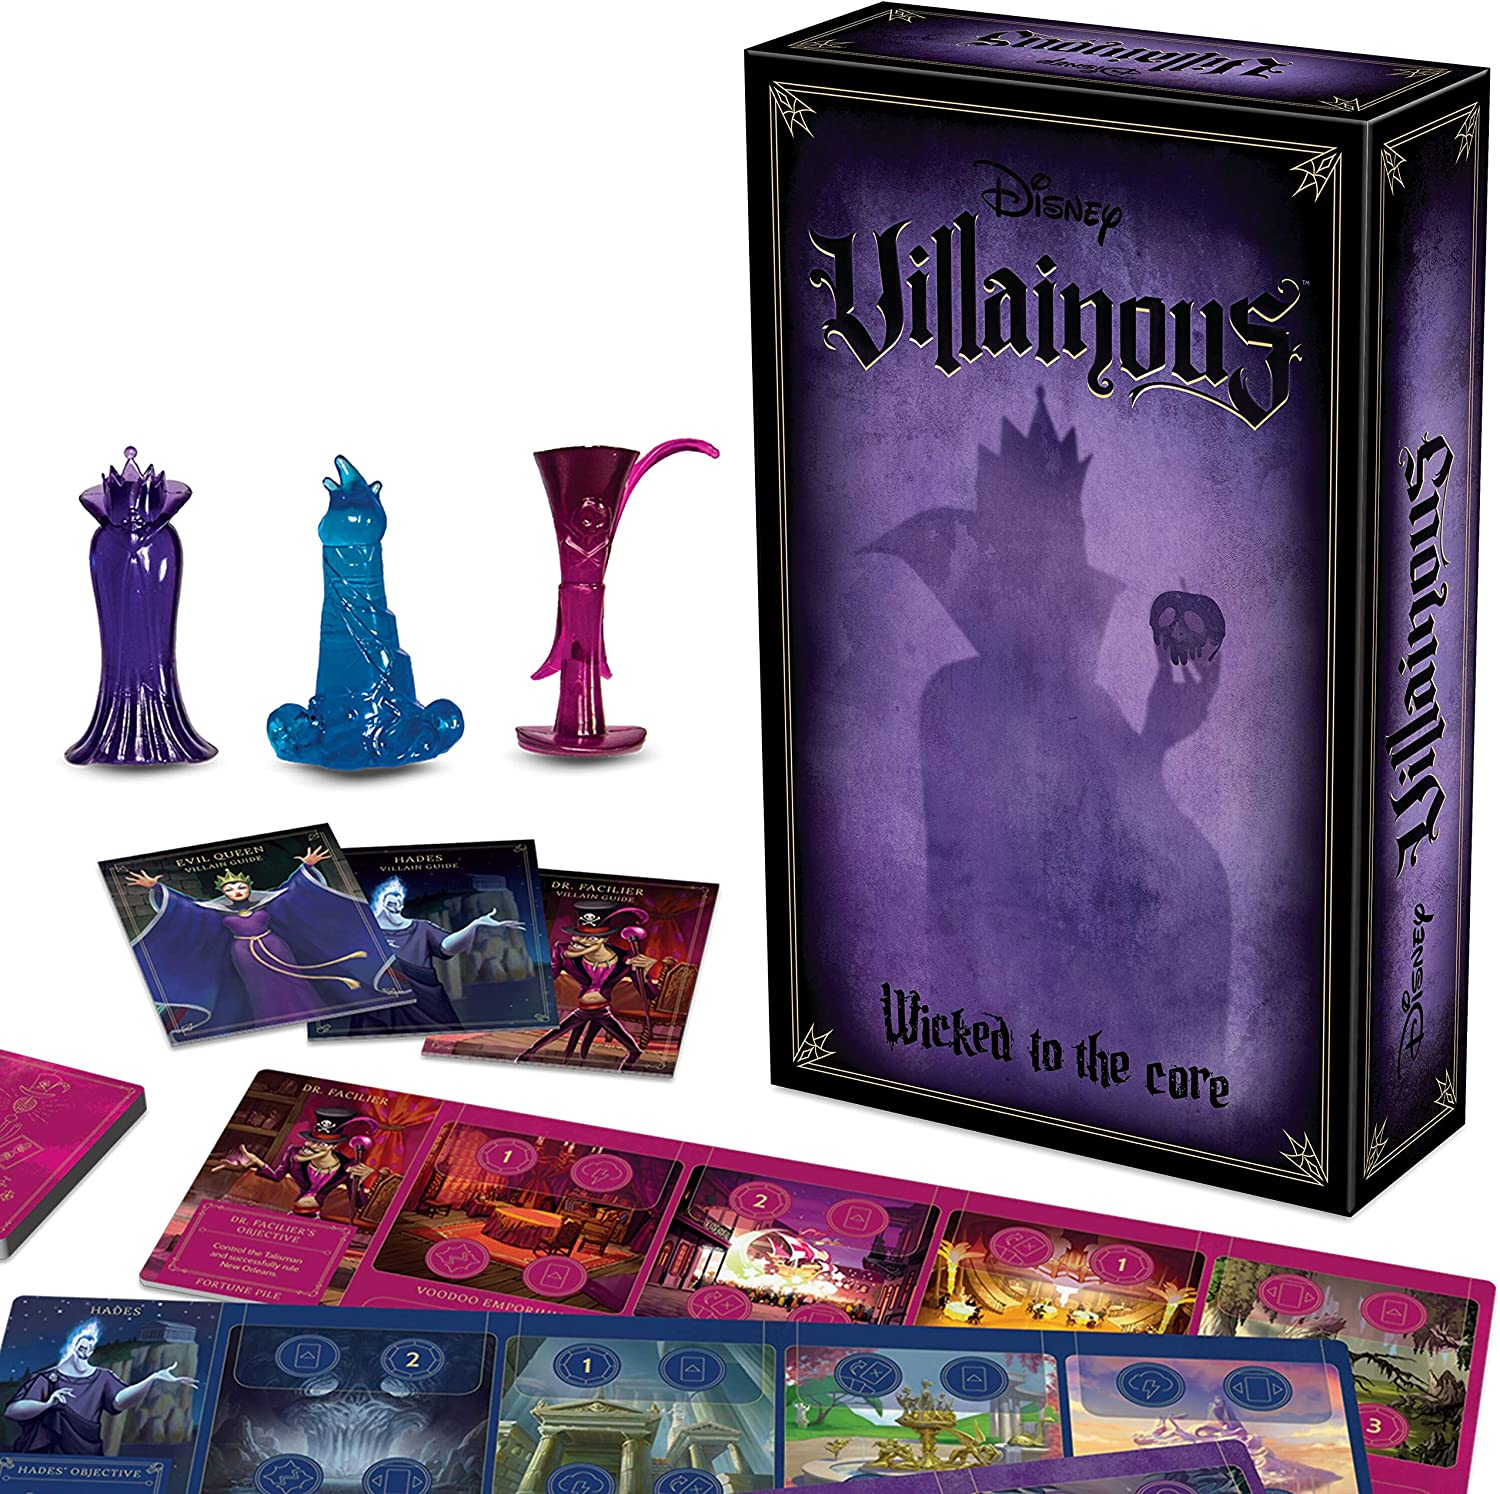 Ravensburger Disney Villainous: Wicked to The Core Strategy Board Game for Age 10 & Up - Stand-Alone & Expansion to The 2019 Toty Game of The Year Award Winner: Amazon.es: Juguetes y